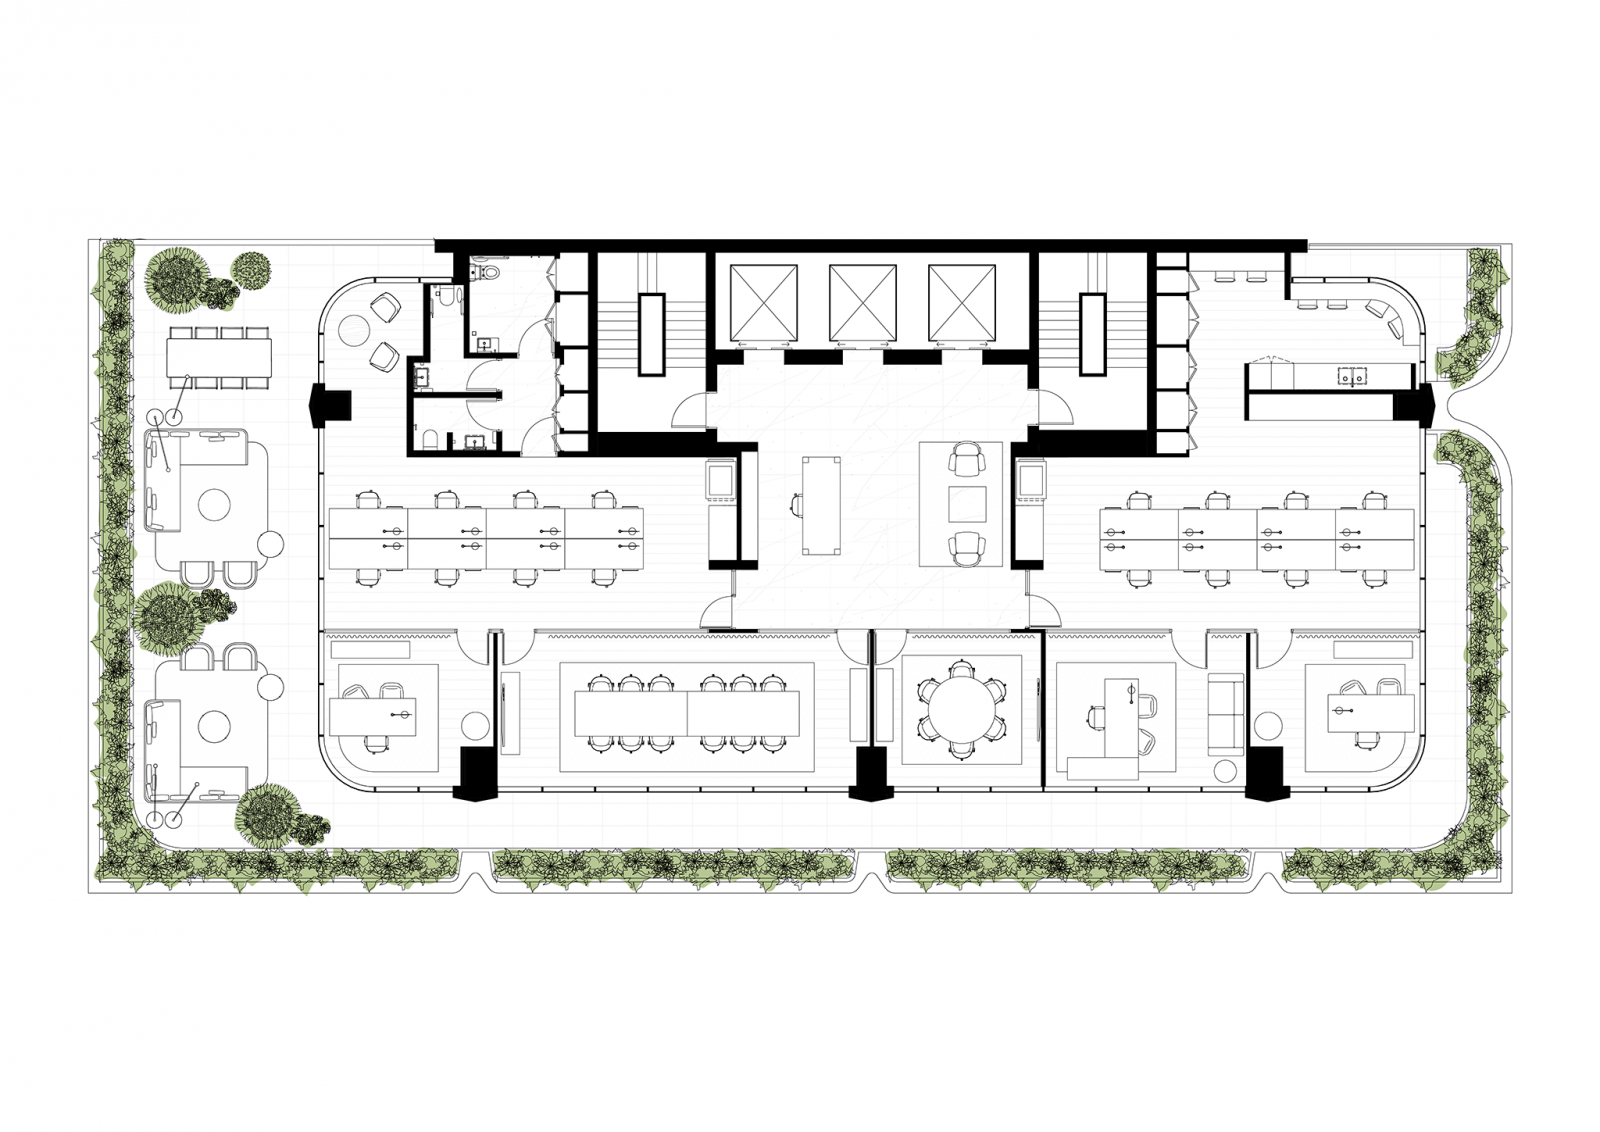 Tower floorplan, level 8 with landscaped terrace, single tenancy, 1:10 population density ratio